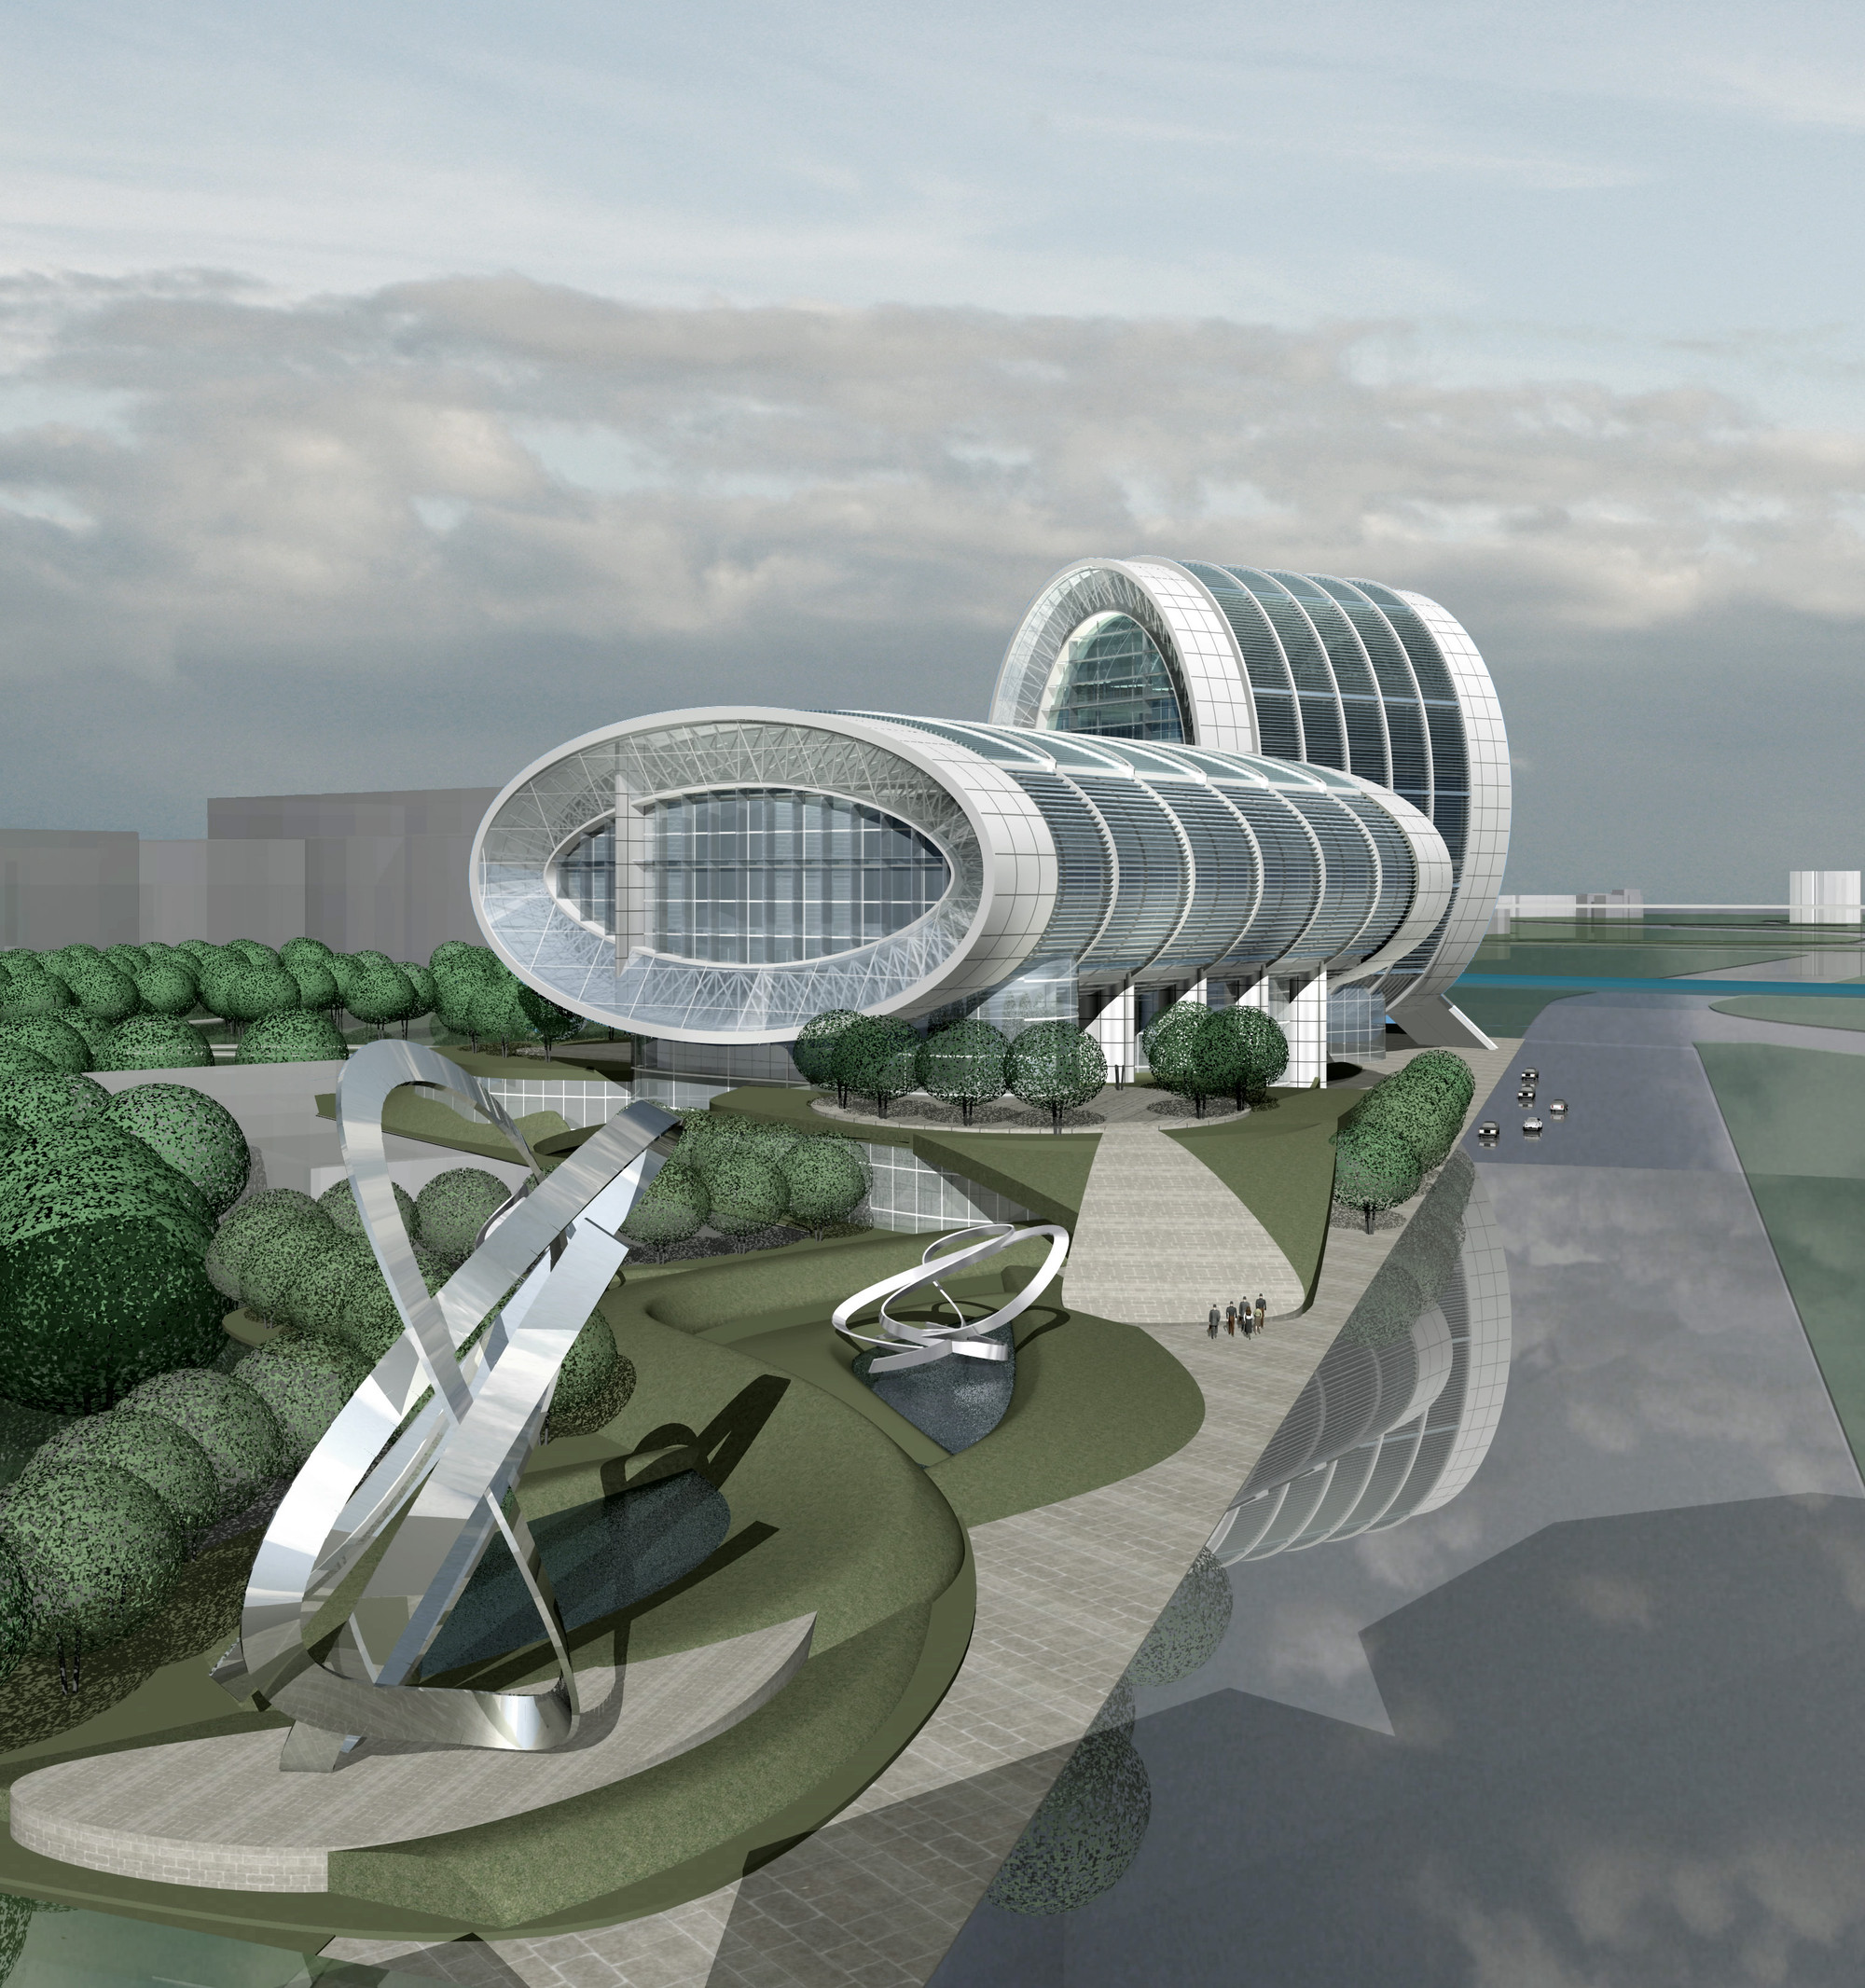 Form4 Architecture Wins WAN Civic Buildings Future Schemes Award for Cultural Center in Taiwan